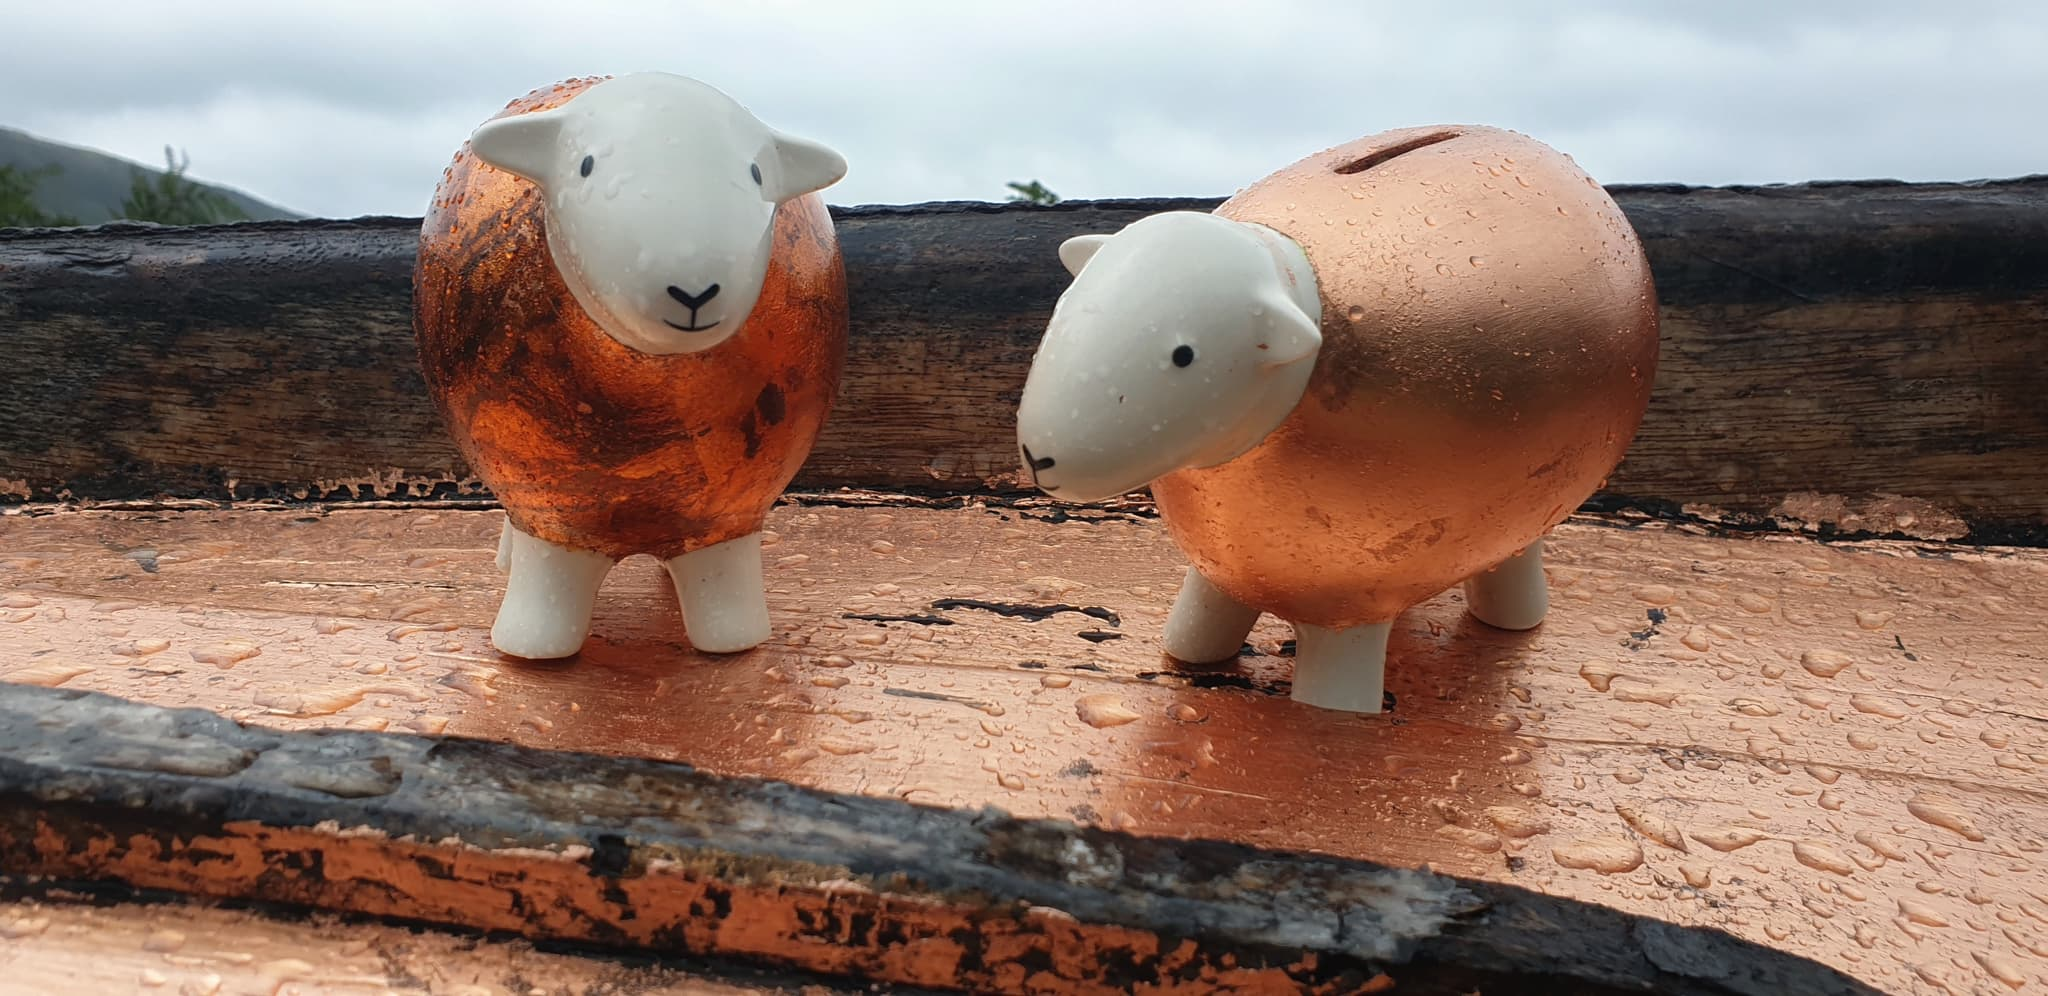 Two Herdybanks, covered in copper